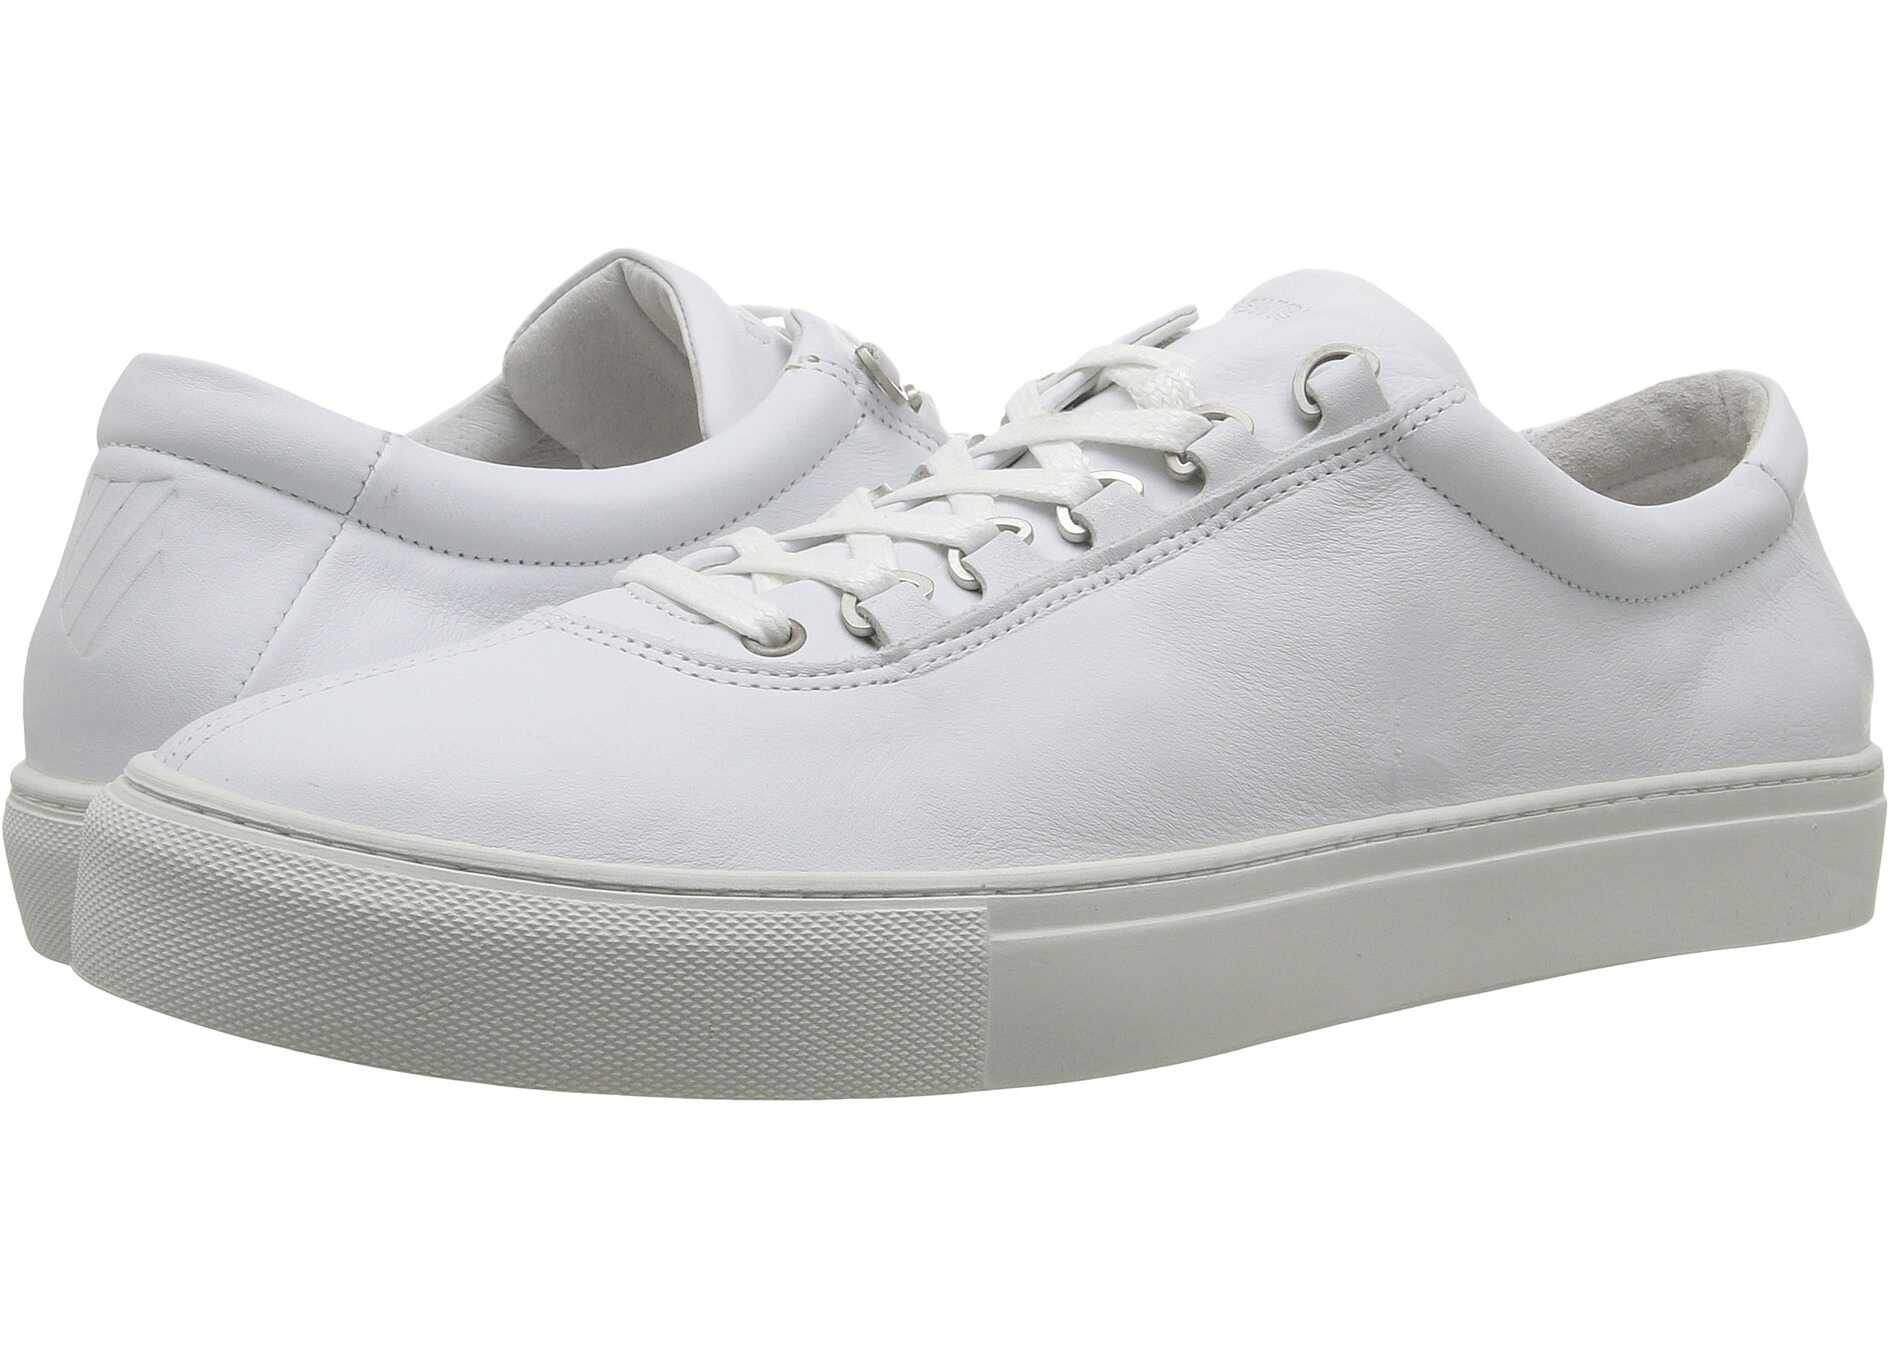 K-Swiss Court Classico White/Off-White Leather